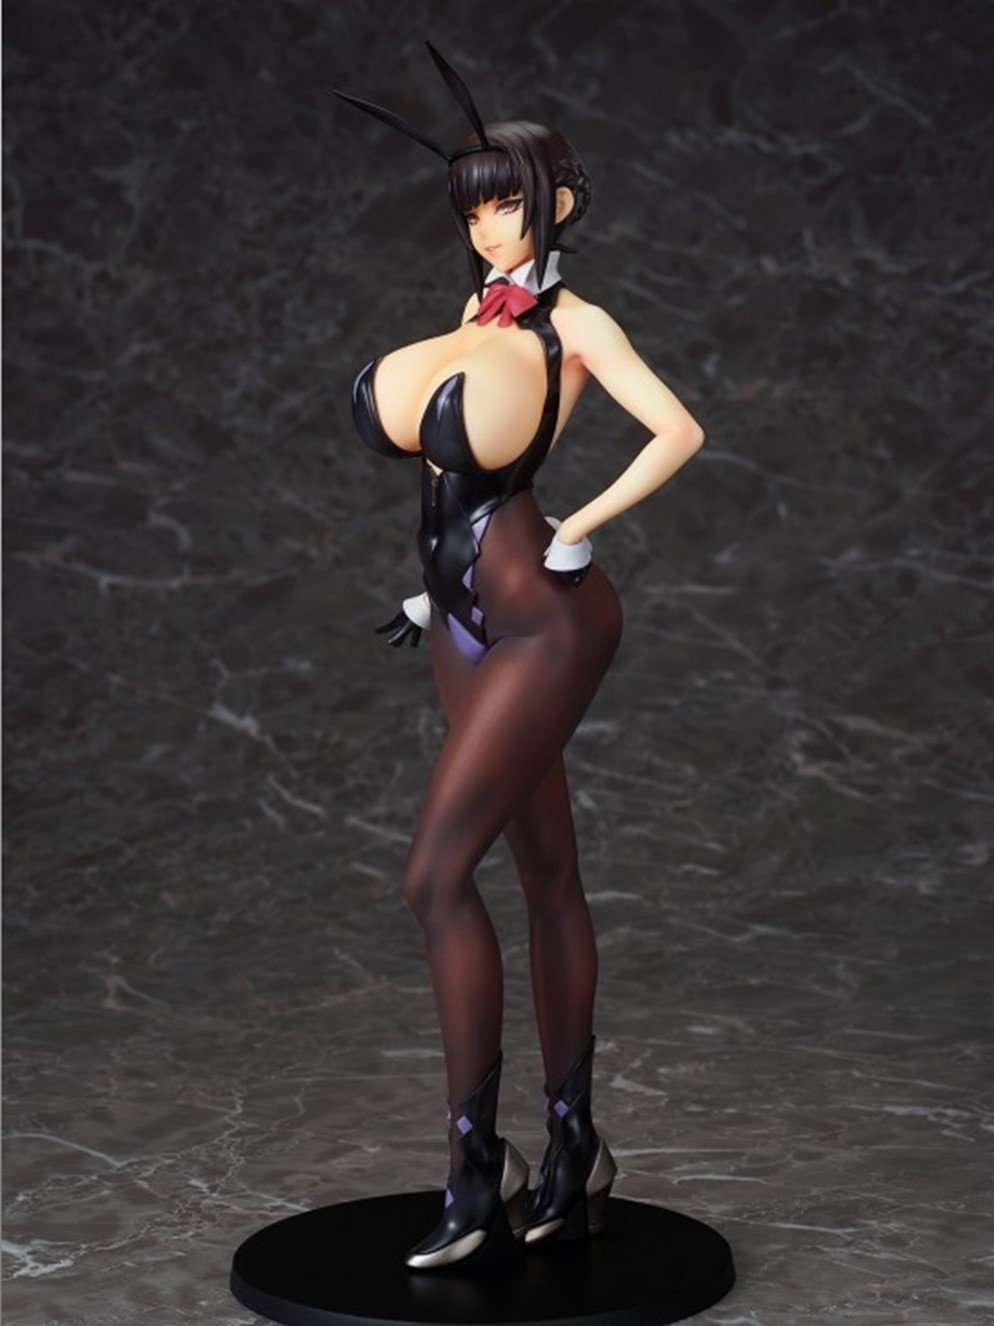 1/5 Scale Painted Anime <font><b>Sexy</b></font> BUNNY <font><b>GIRL</b></font> Izayoi Erika Soft Chest Adult Dolls R18+ PVC Dress Up <font><b>Action</b></font> <font><b>Figure</b></font> Model Toy BOX D684 image